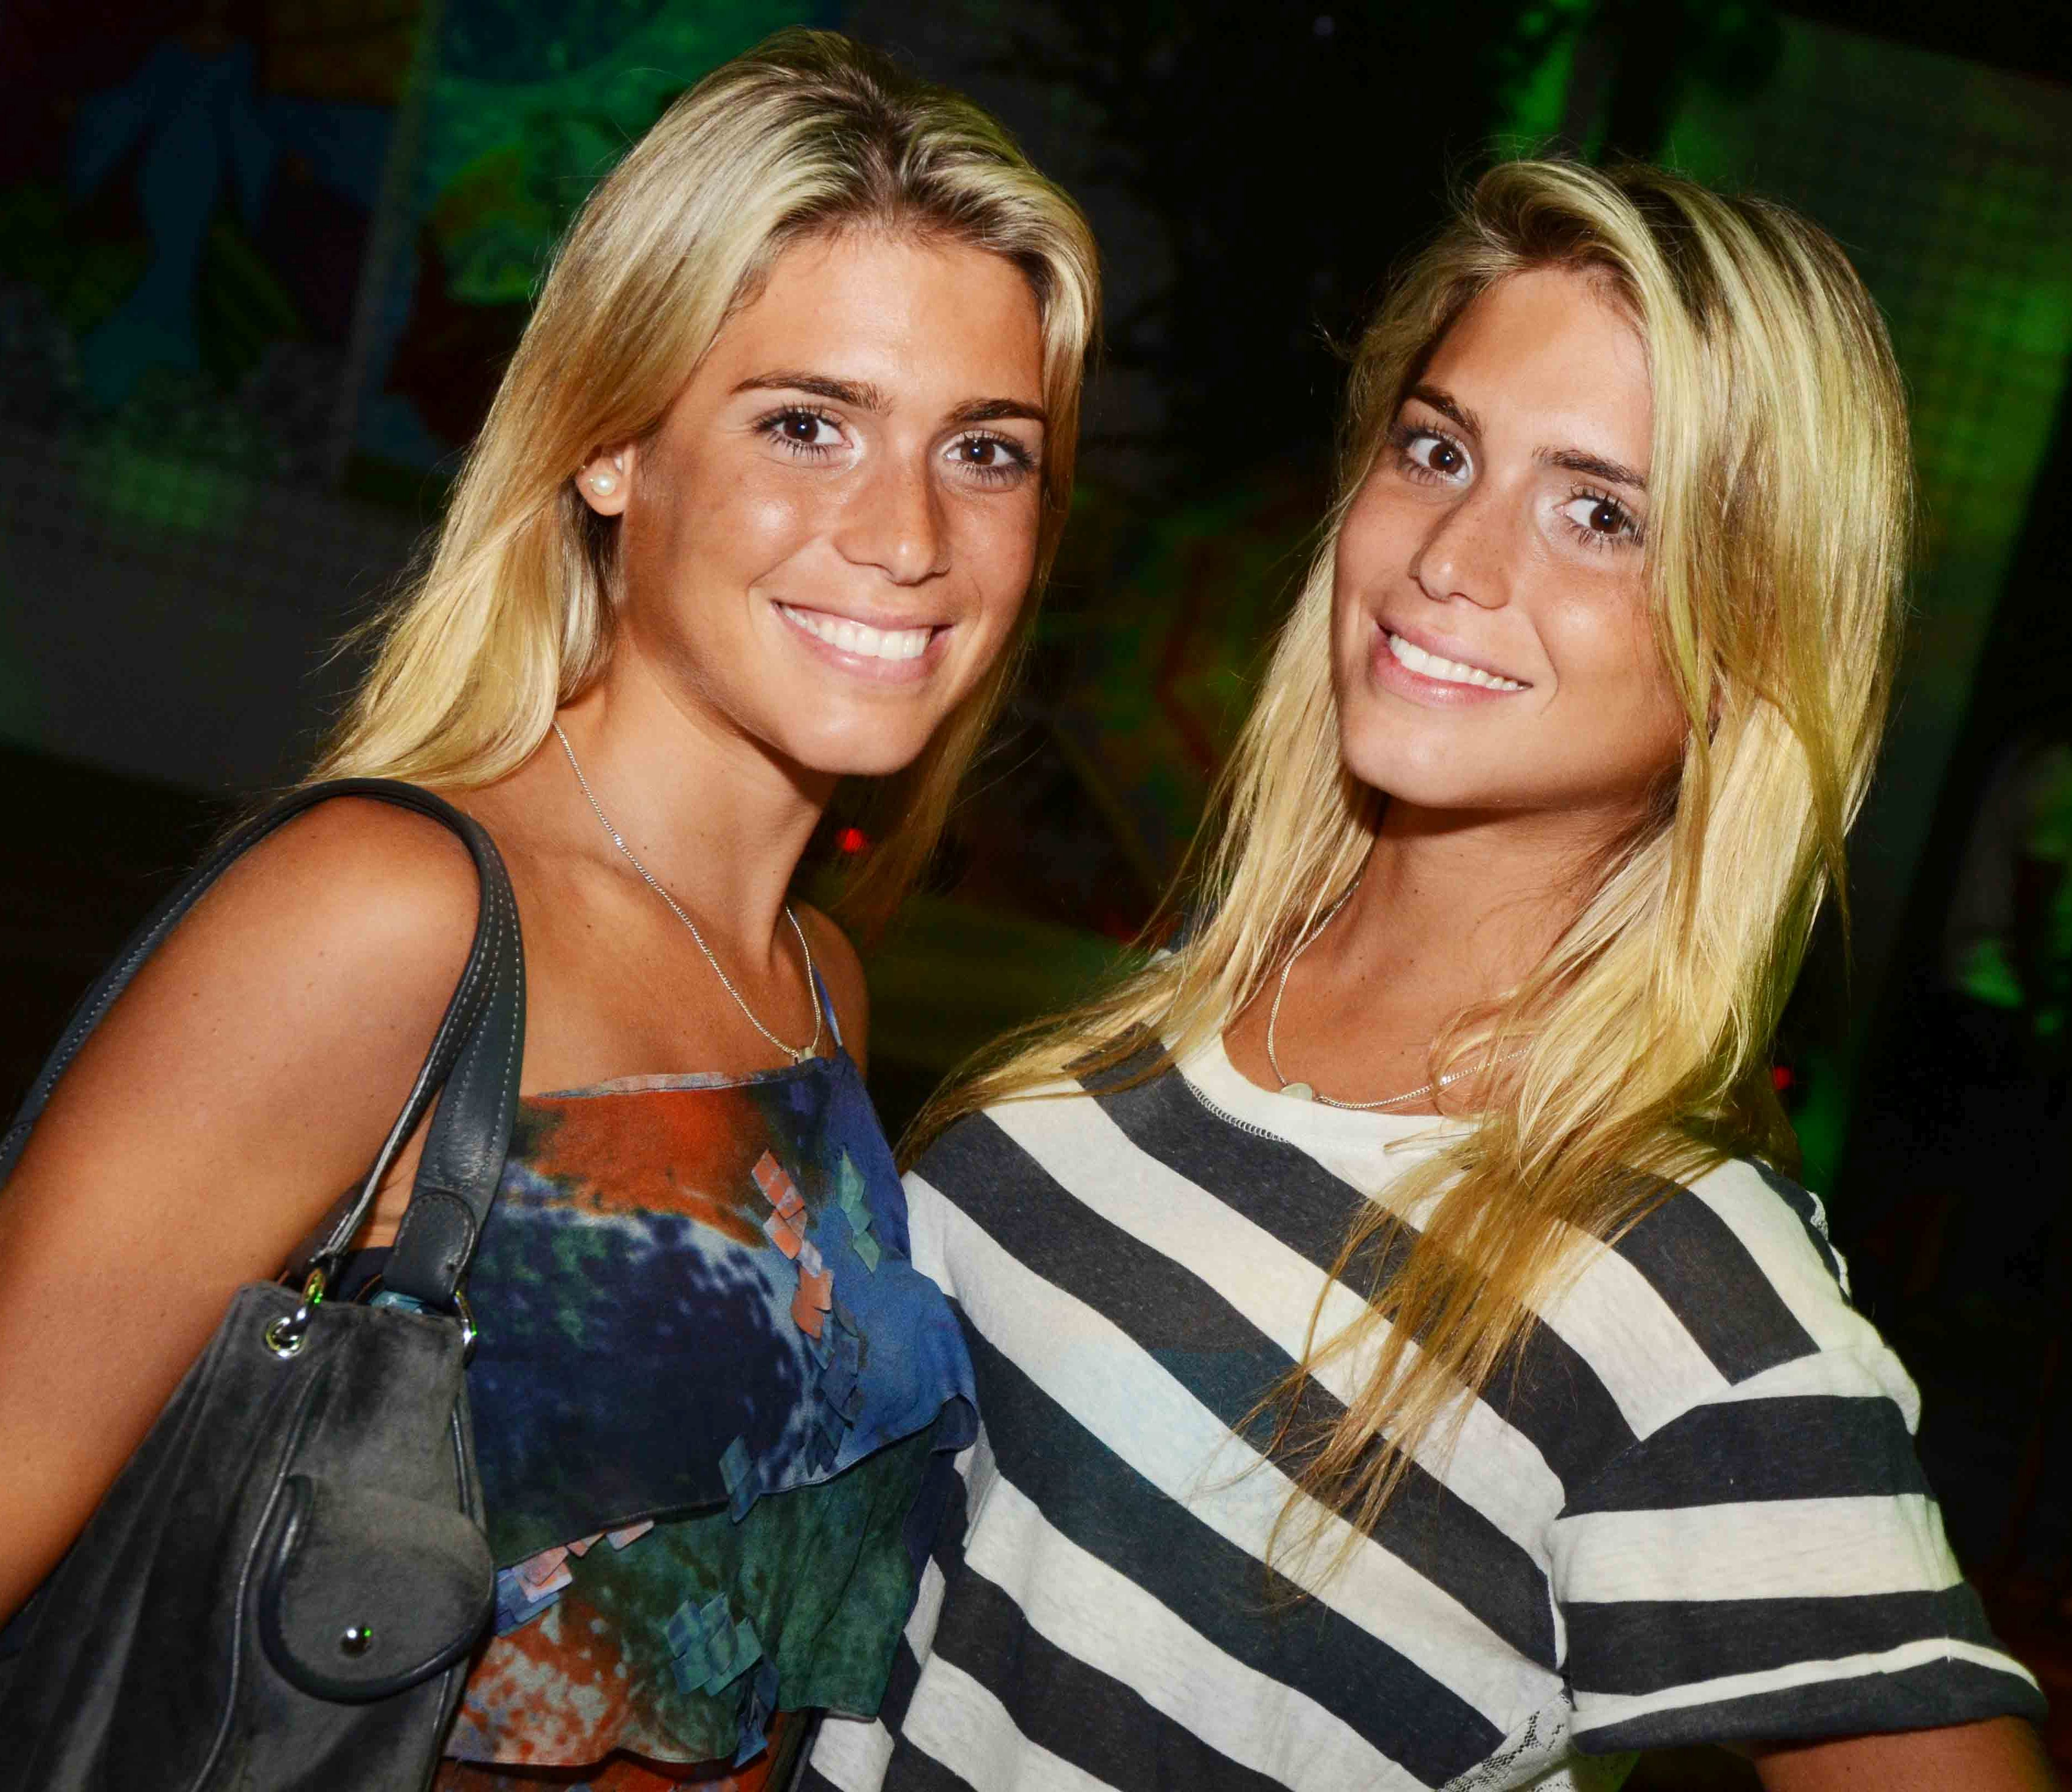 And twins feres Bia branca